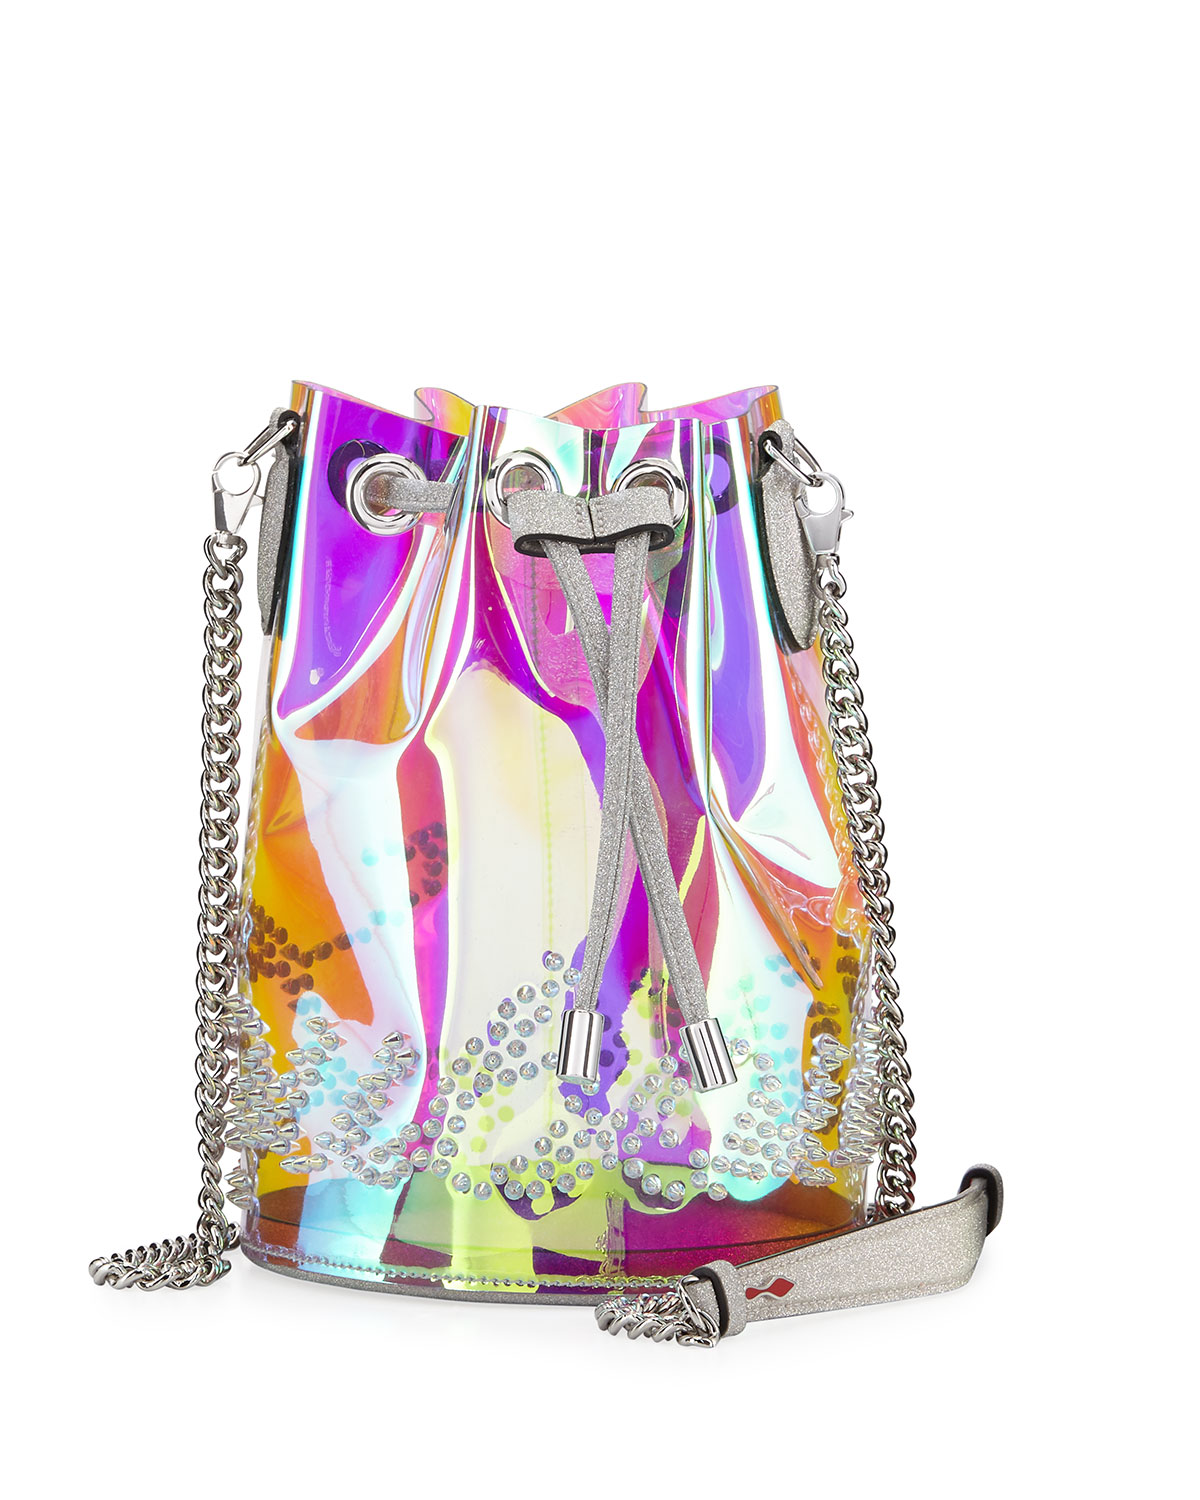 ddb1fbe2ab98 Christian Louboutin Marie Jane Mini GlitterSunset PVC Bucket Bag ...